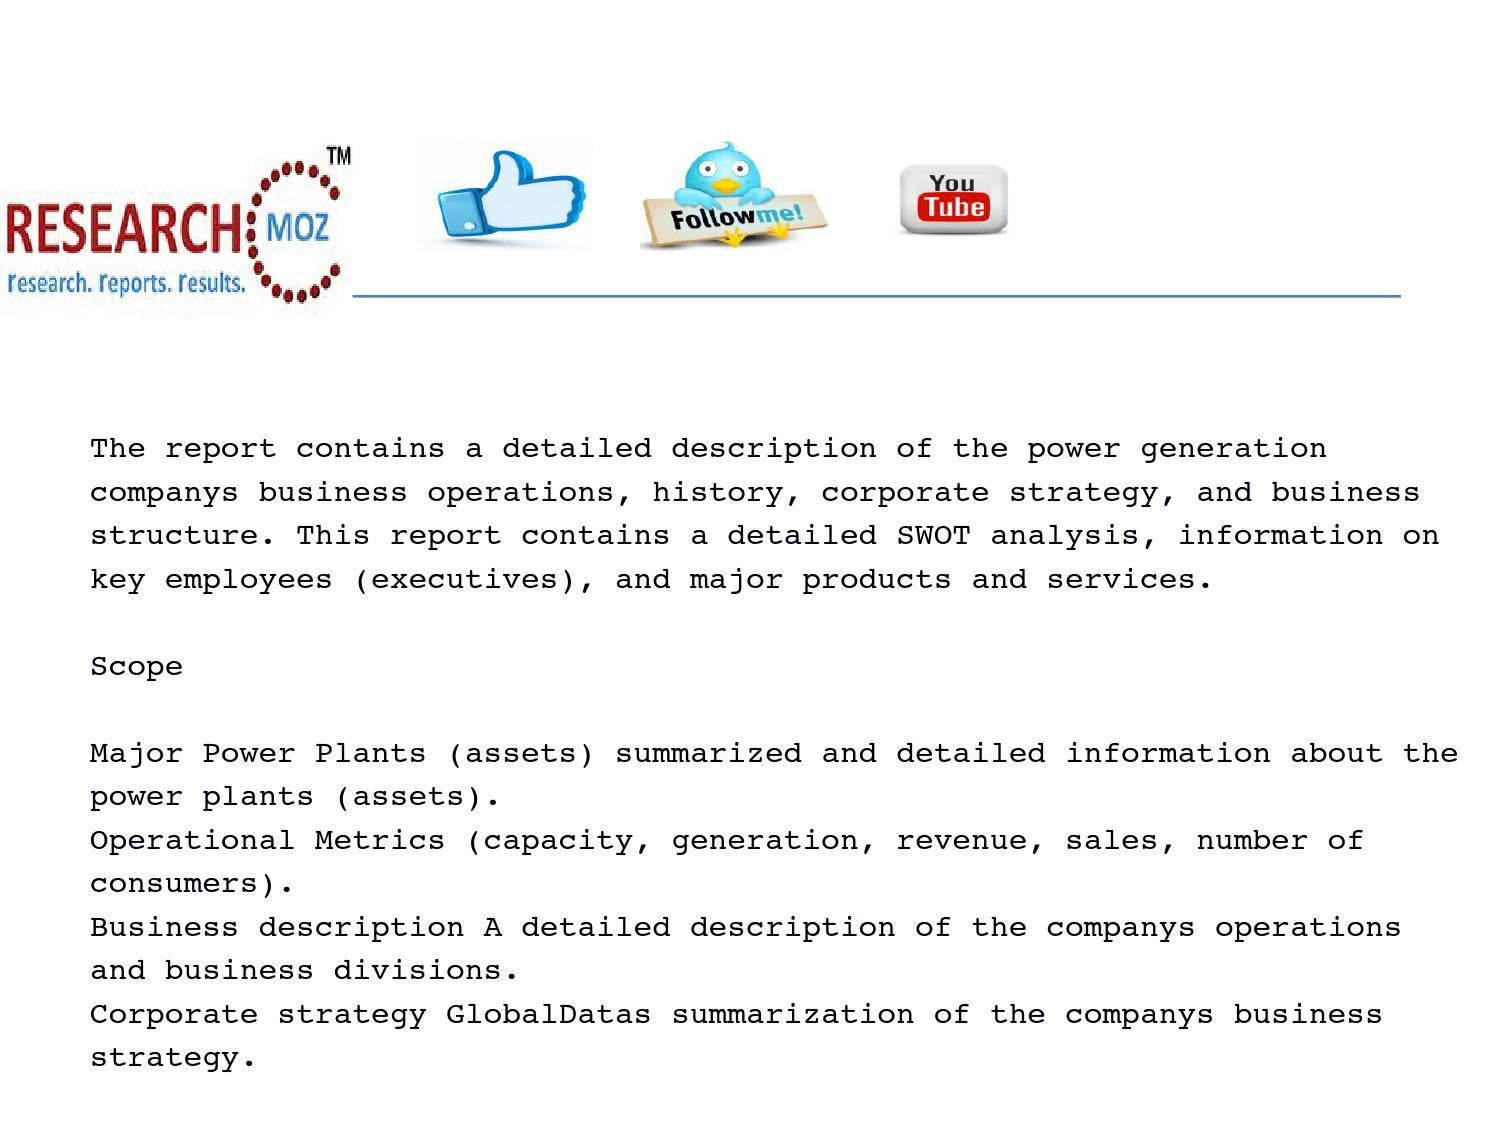 power plants and swot analysis of Verbund ag - power plants and swot analysis, 2017 update summary the report contains a detailed description of the power generation company's business operations, history, corporate strategy, and business structure.